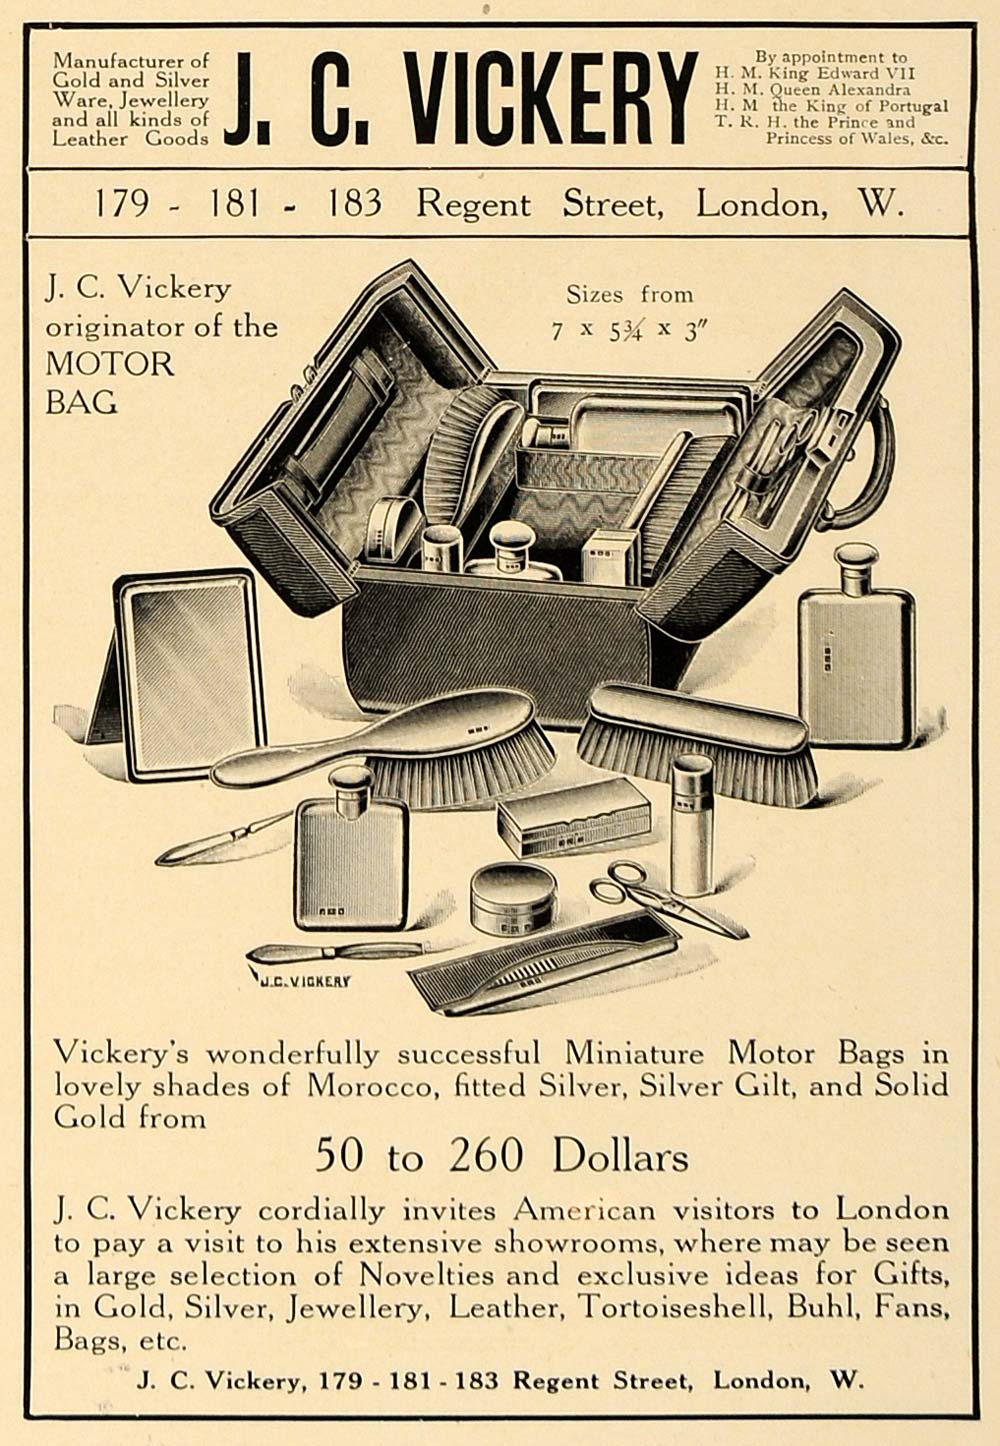 1907 Ad J.C. Vickery Miniature Motor Bag Sizes Pricing - ORIGINAL CL4